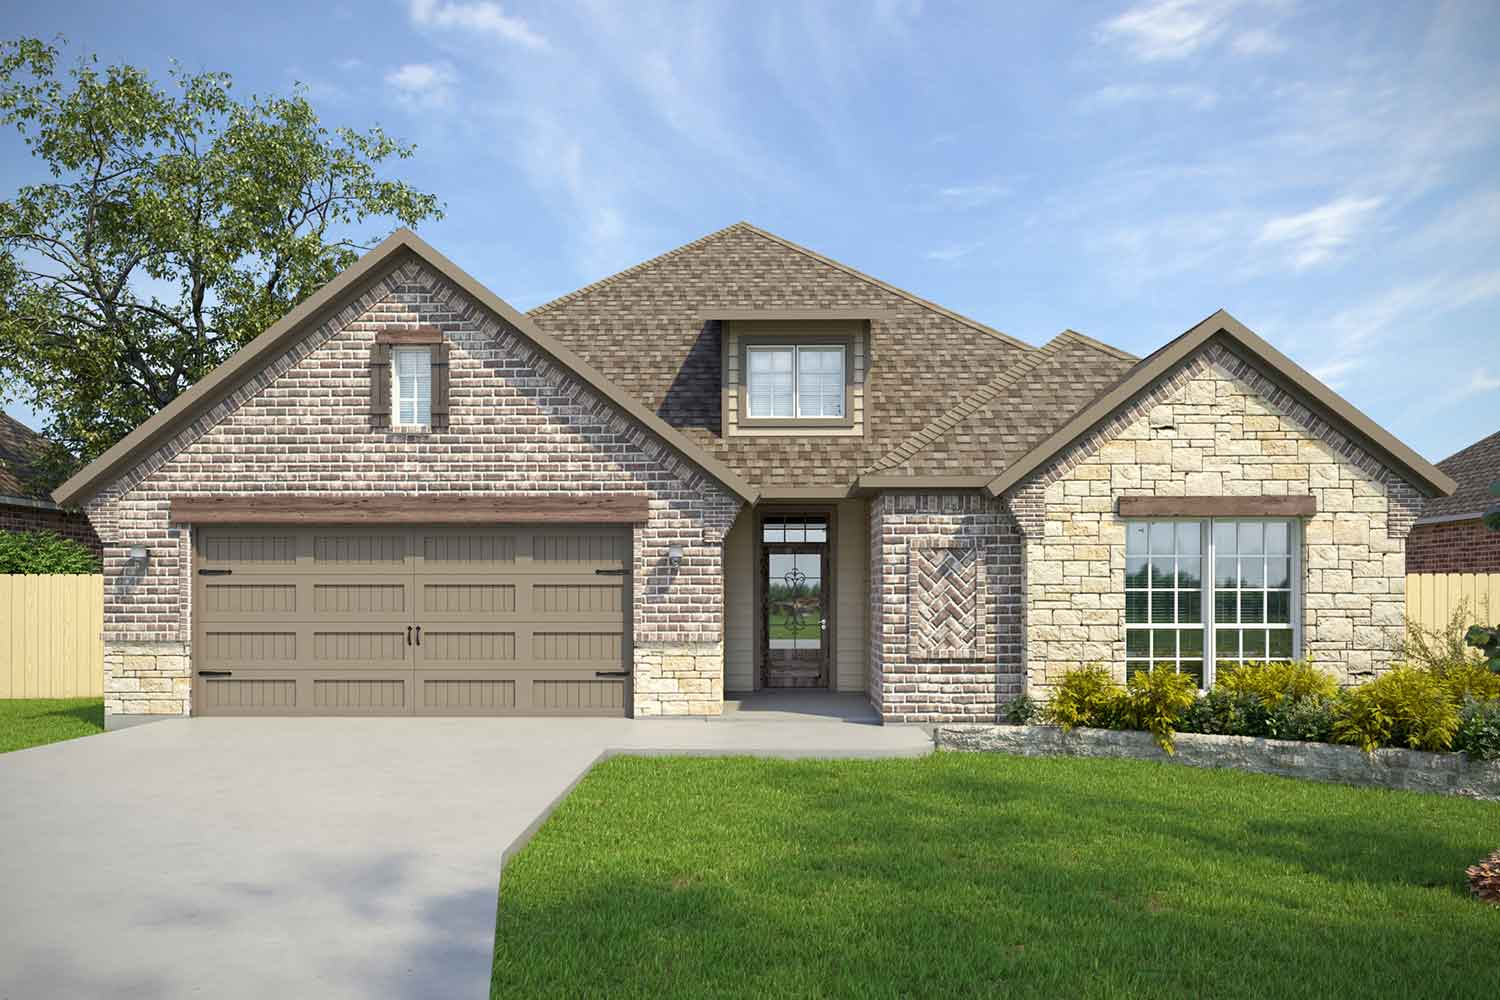 New Homes in Mission Ranch | 3677 Haskell Hollow Lp